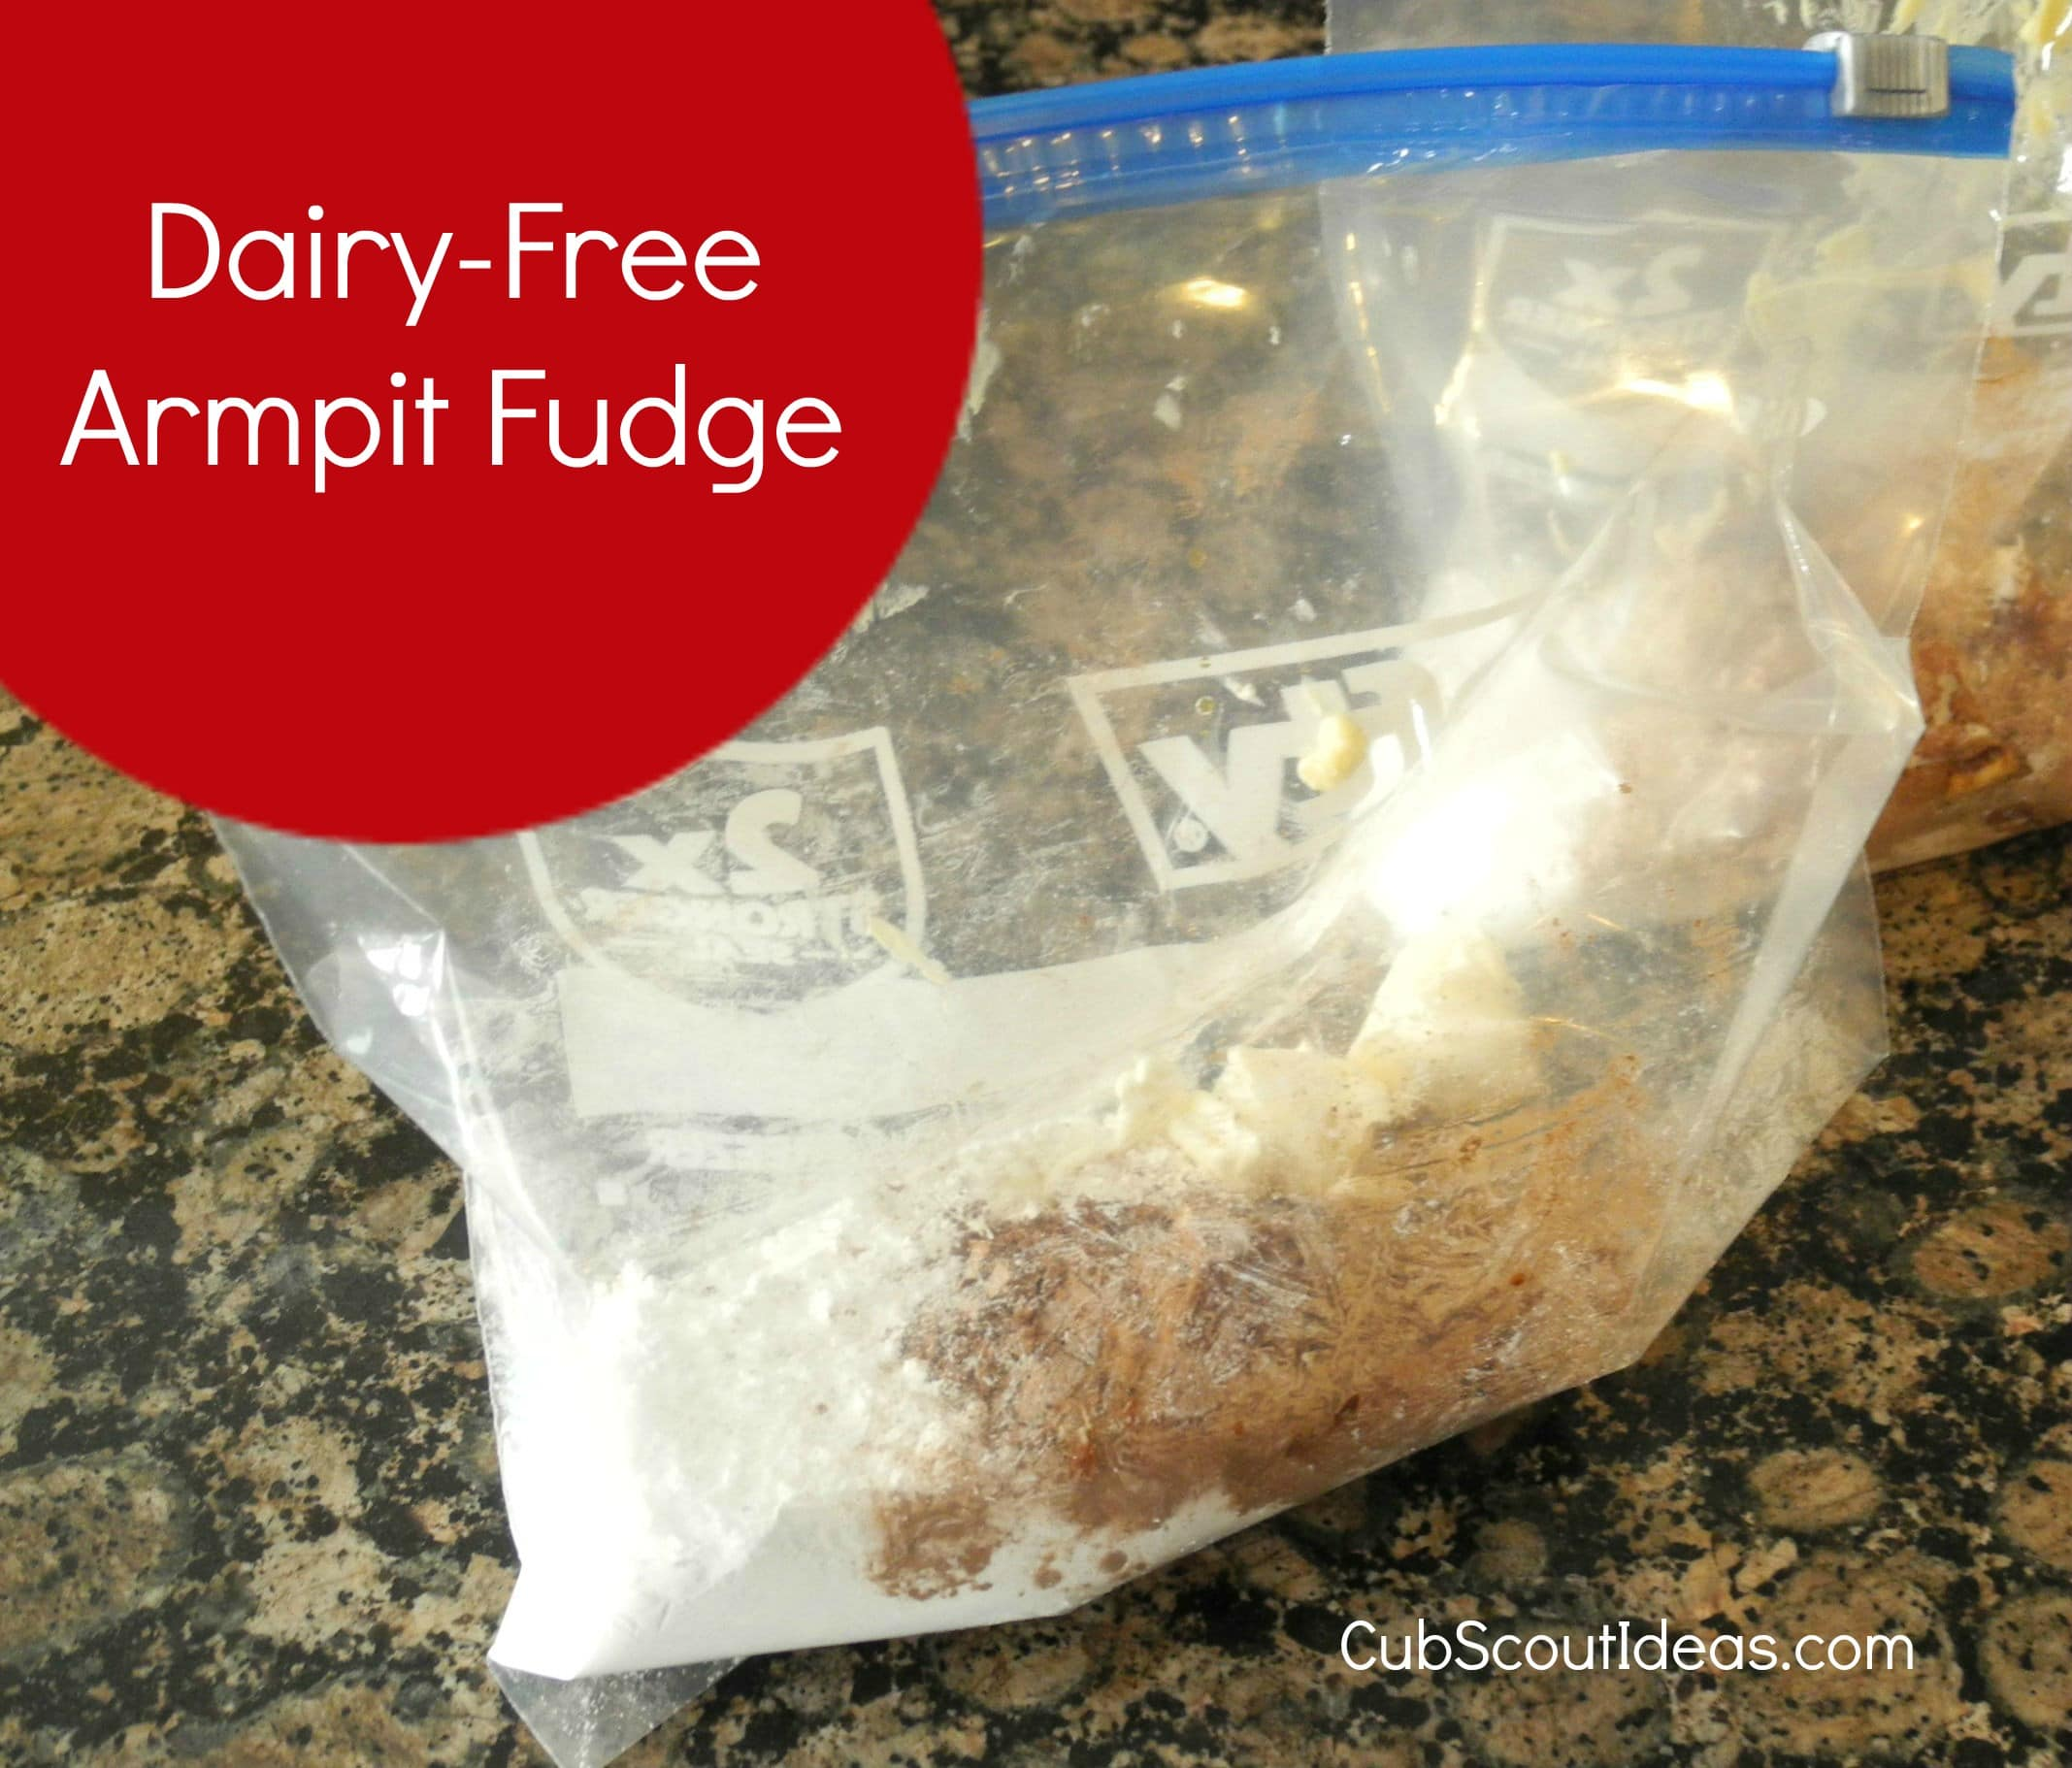 How to Make Dairy-Free Armpit Fudge